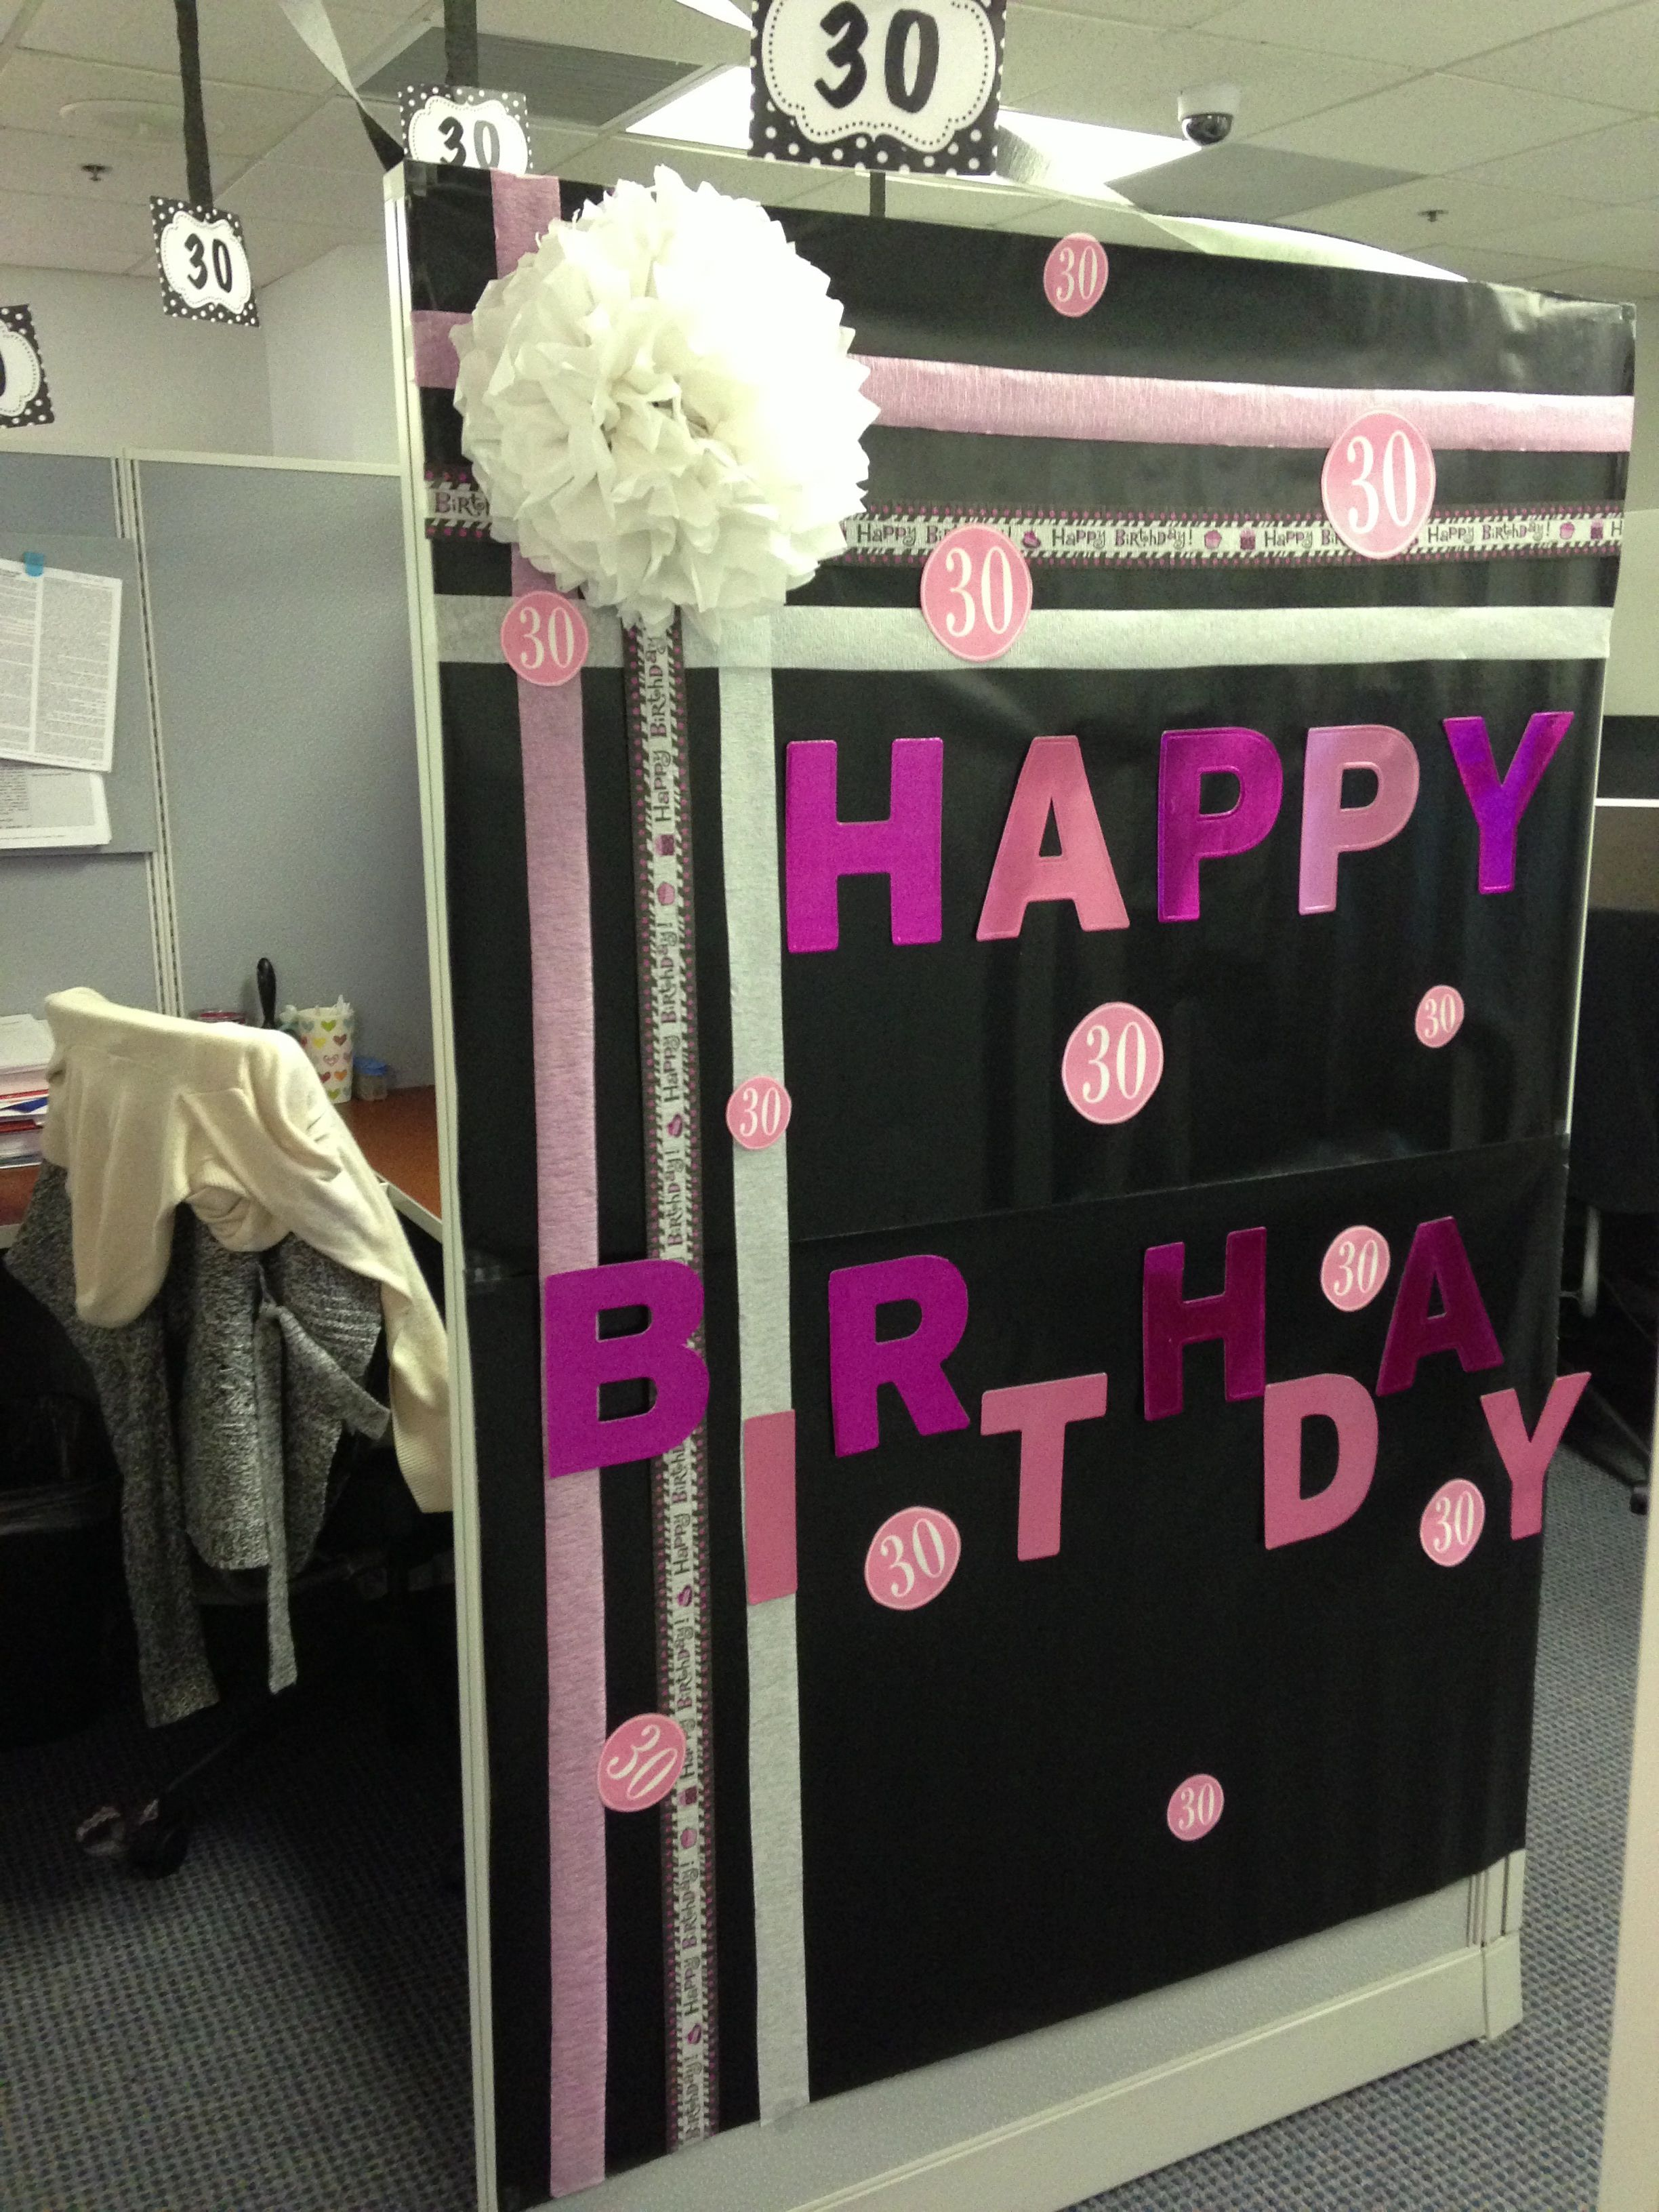 Cubicle Decorations For Birthday Cubicle Decors Workplace Decoration Ideas Pinterest Birthday